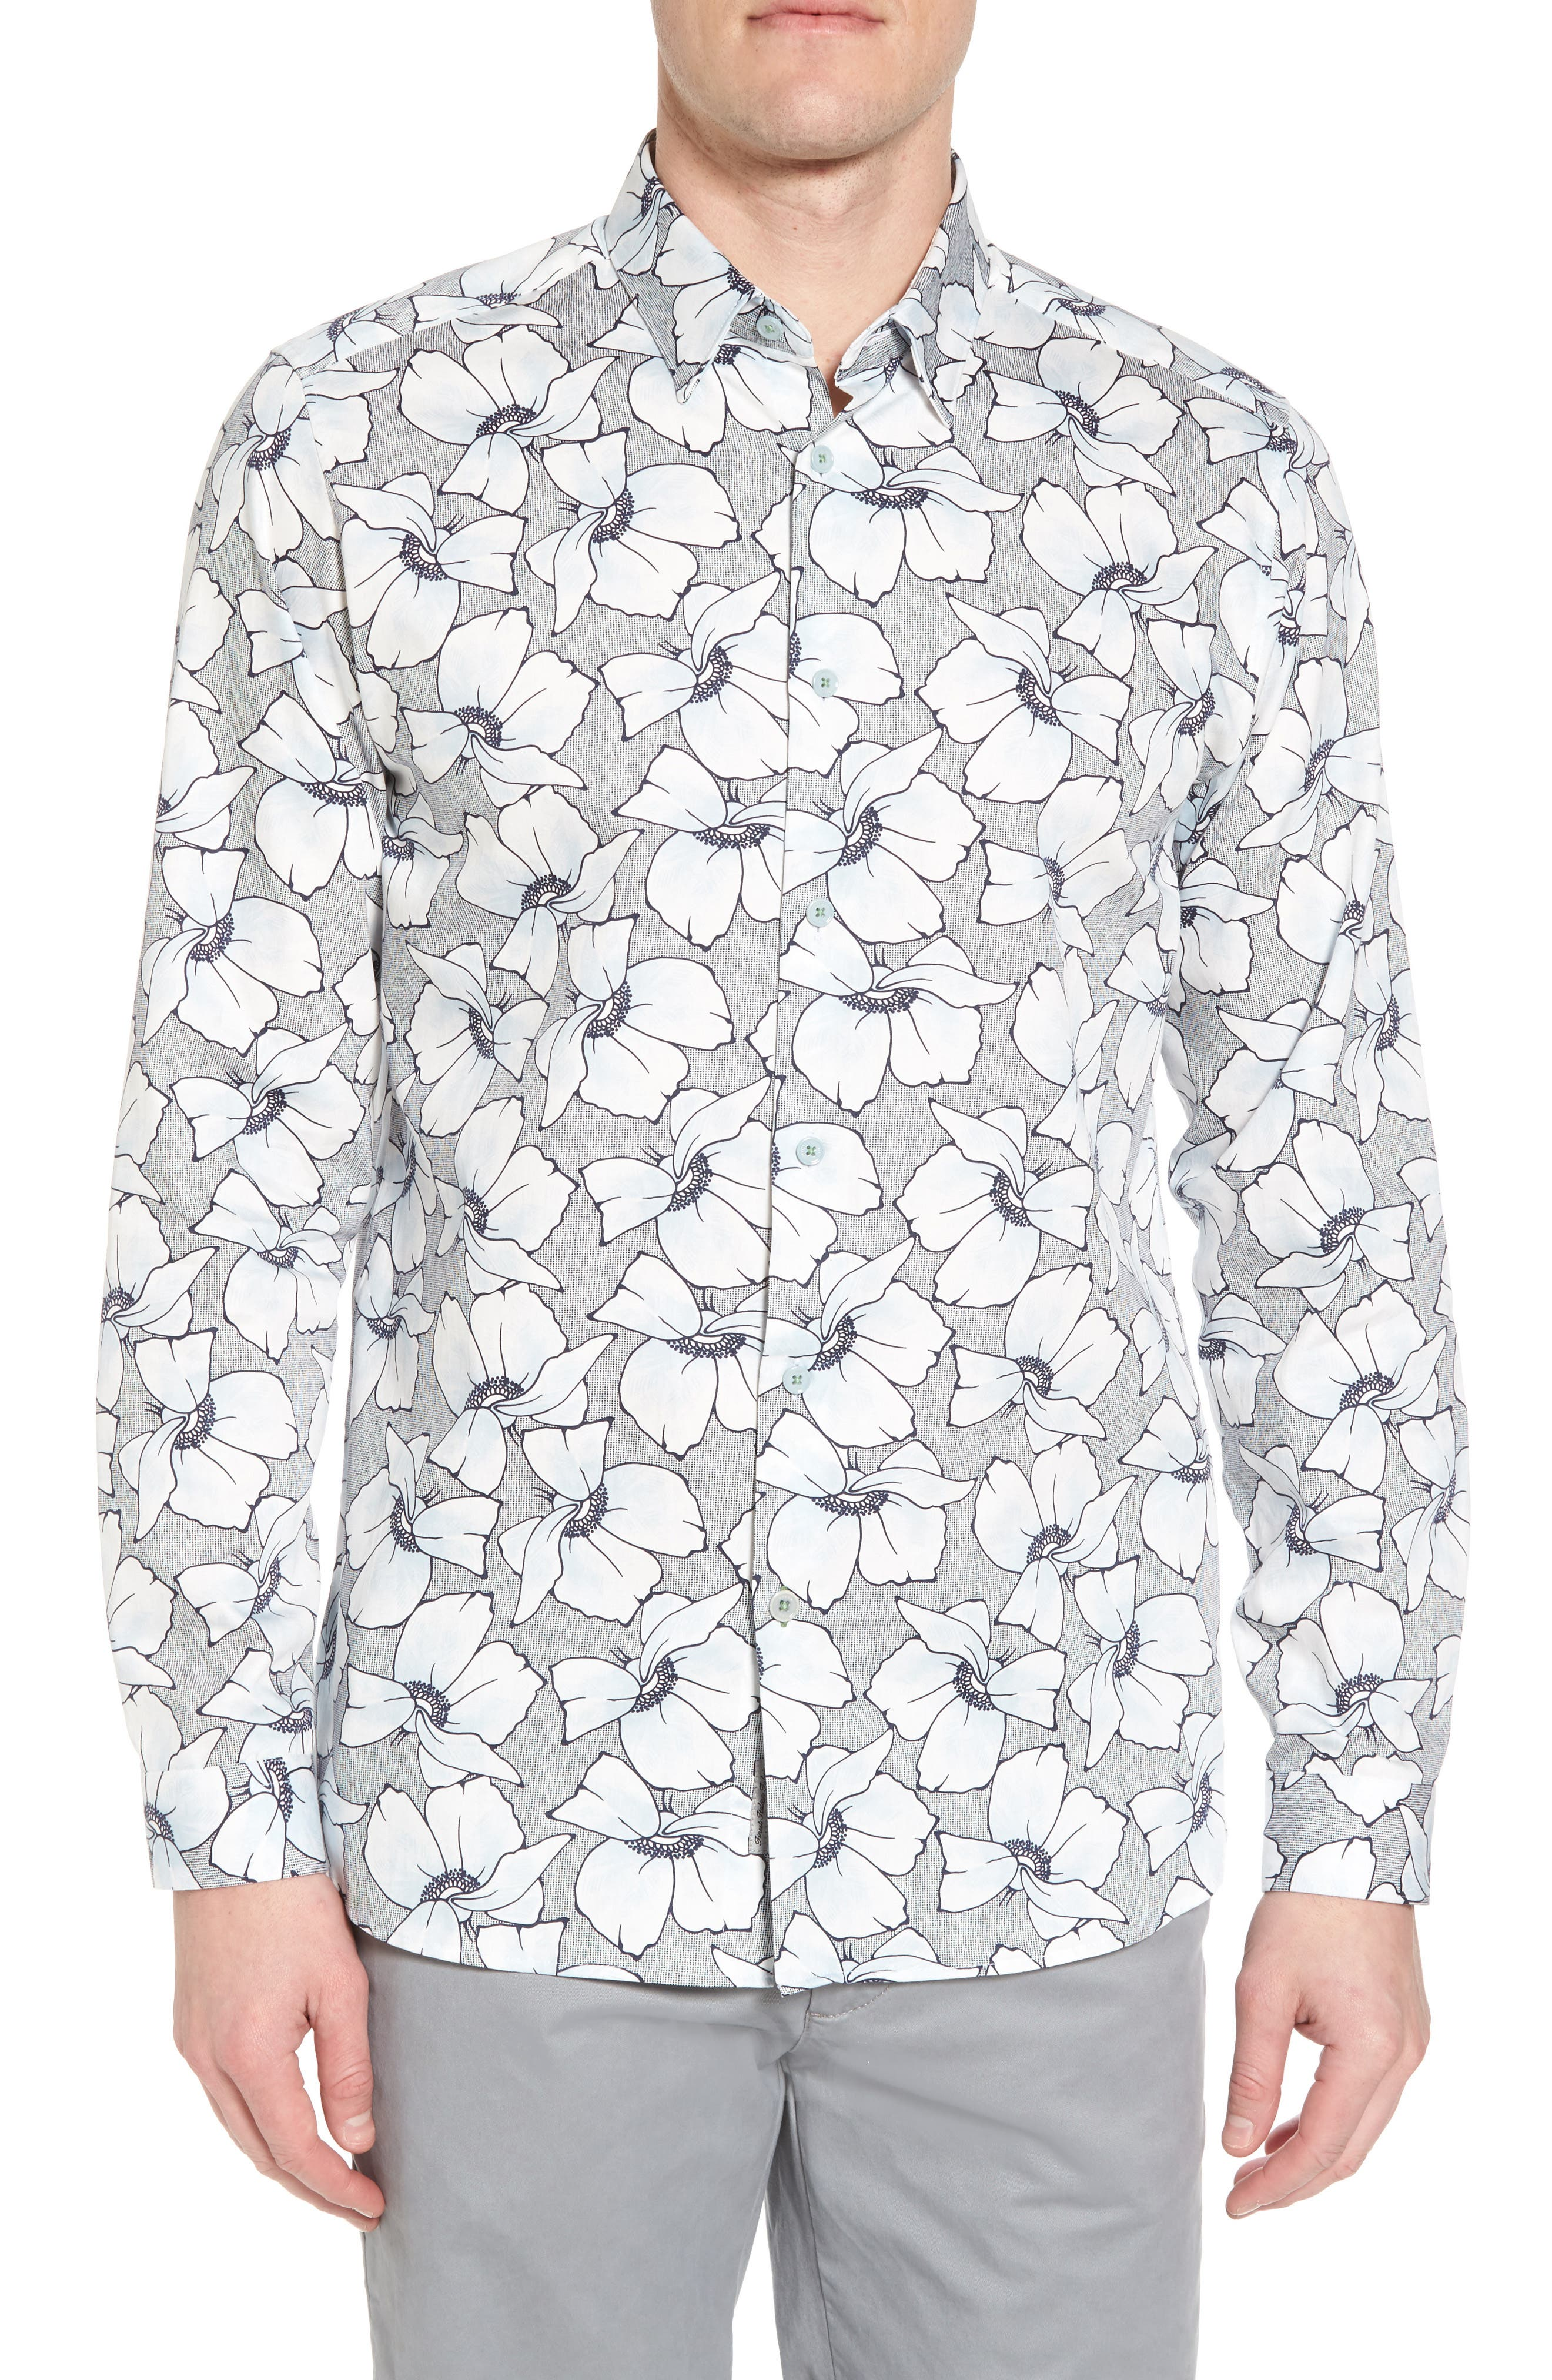 Ligflo Trim Fit Floral Print Sport Shirt,                         Main,                         color, 450